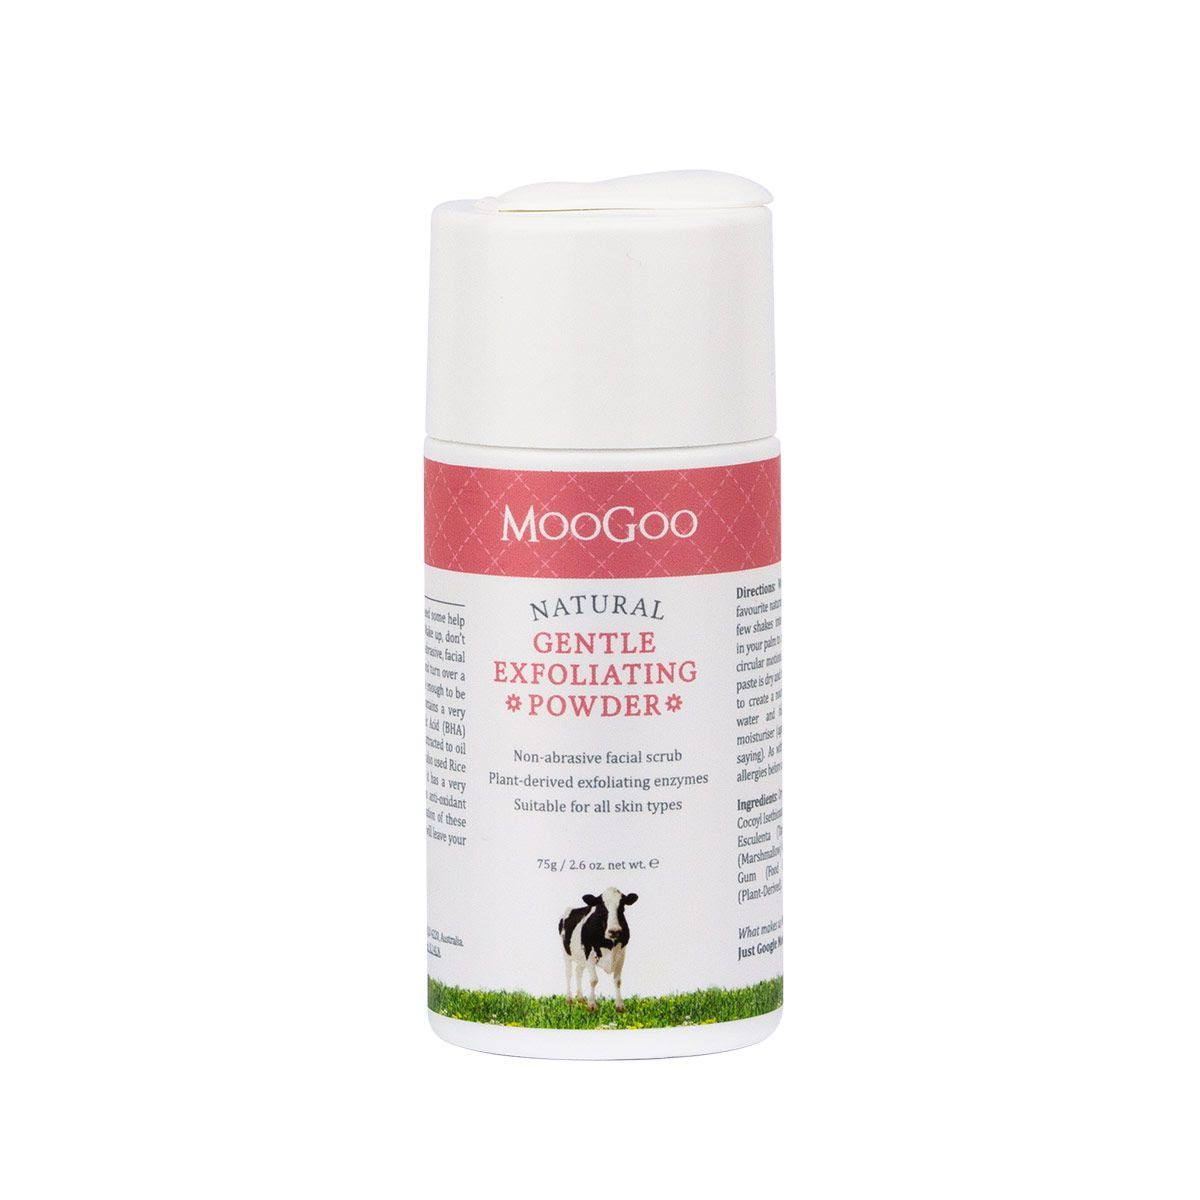 MooGoo Gentle Exfoliating Powder 75g